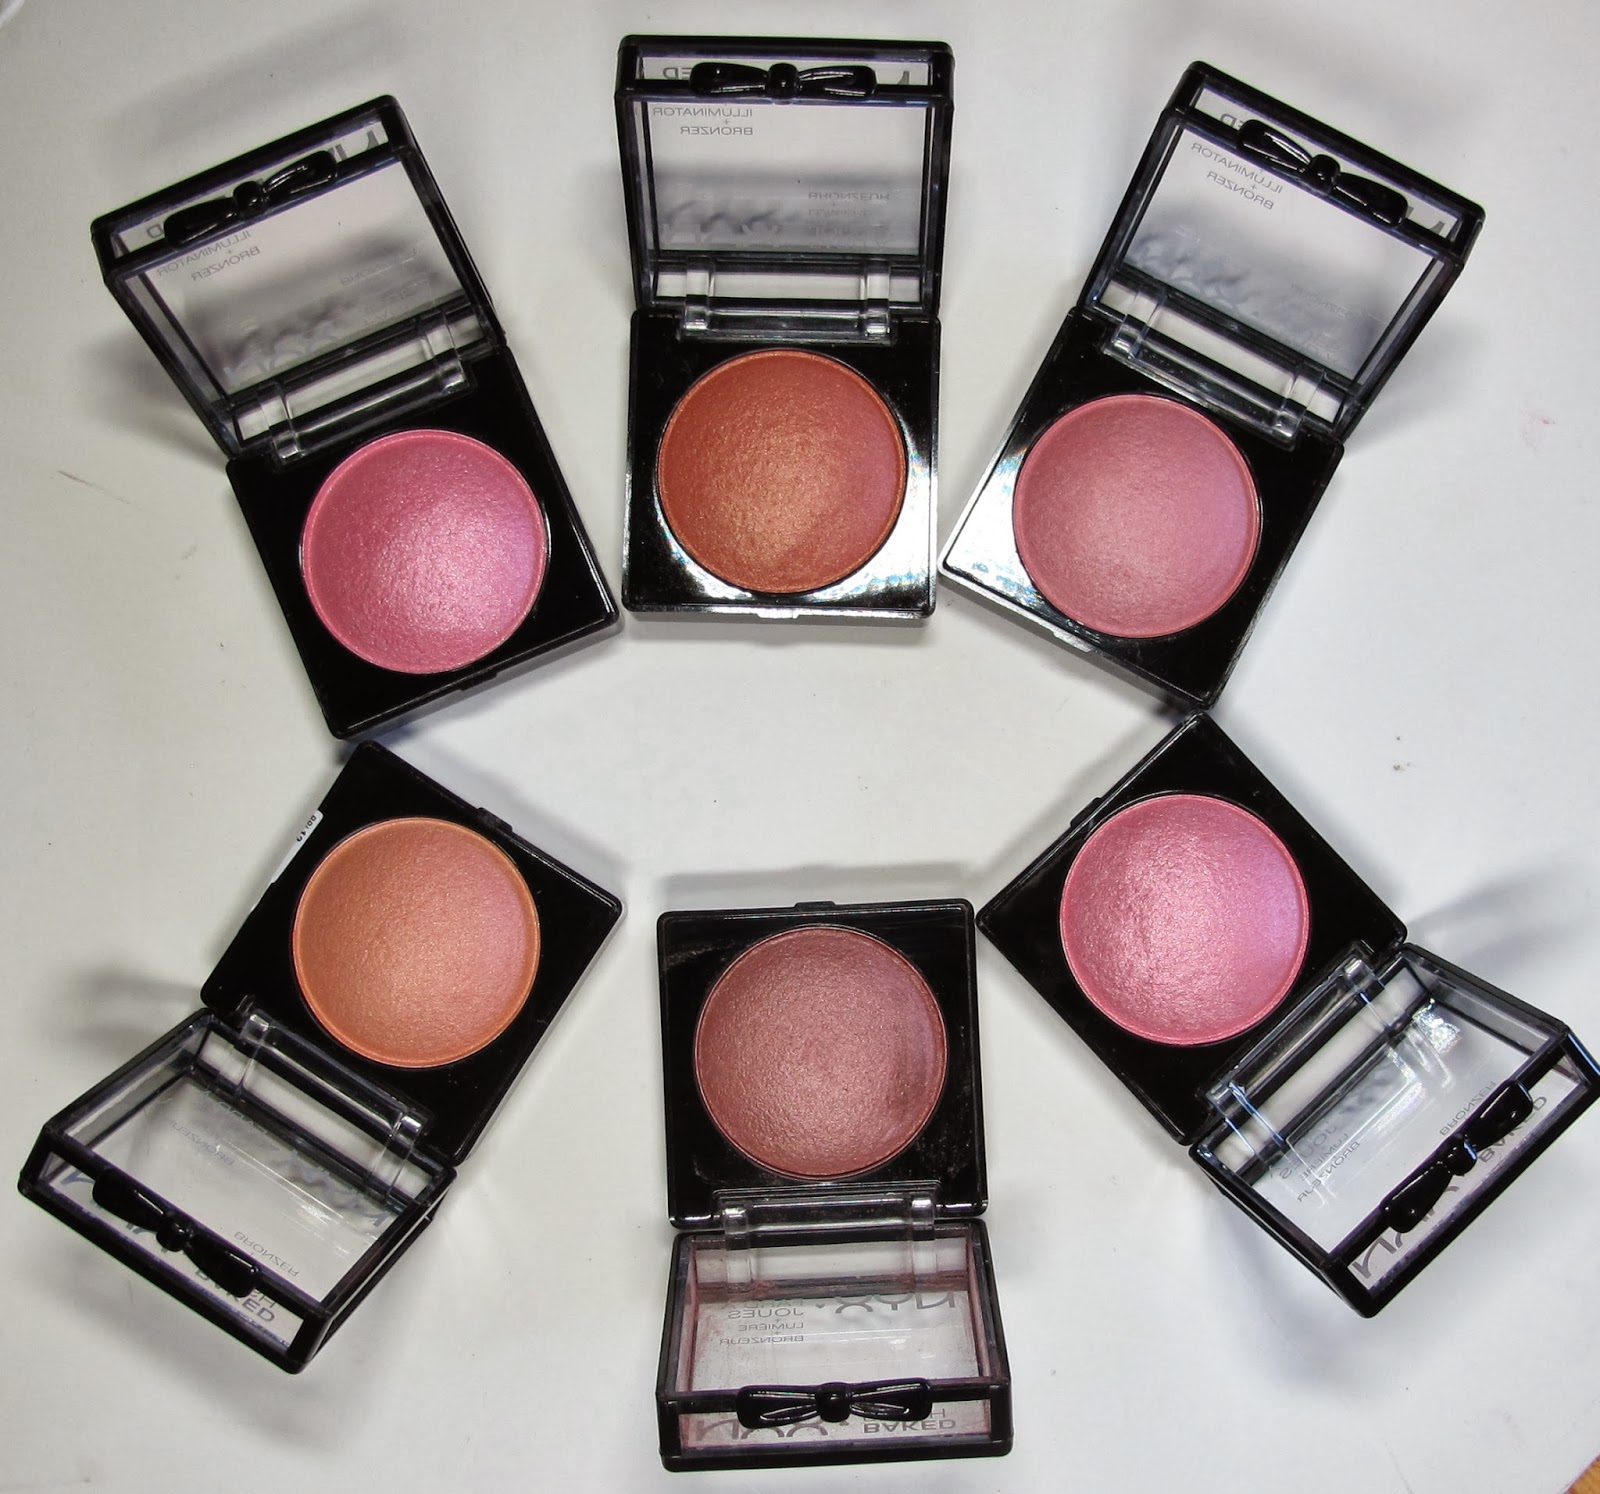 Baked Blush Nyx New Nyx Cosmetics Baked Blush